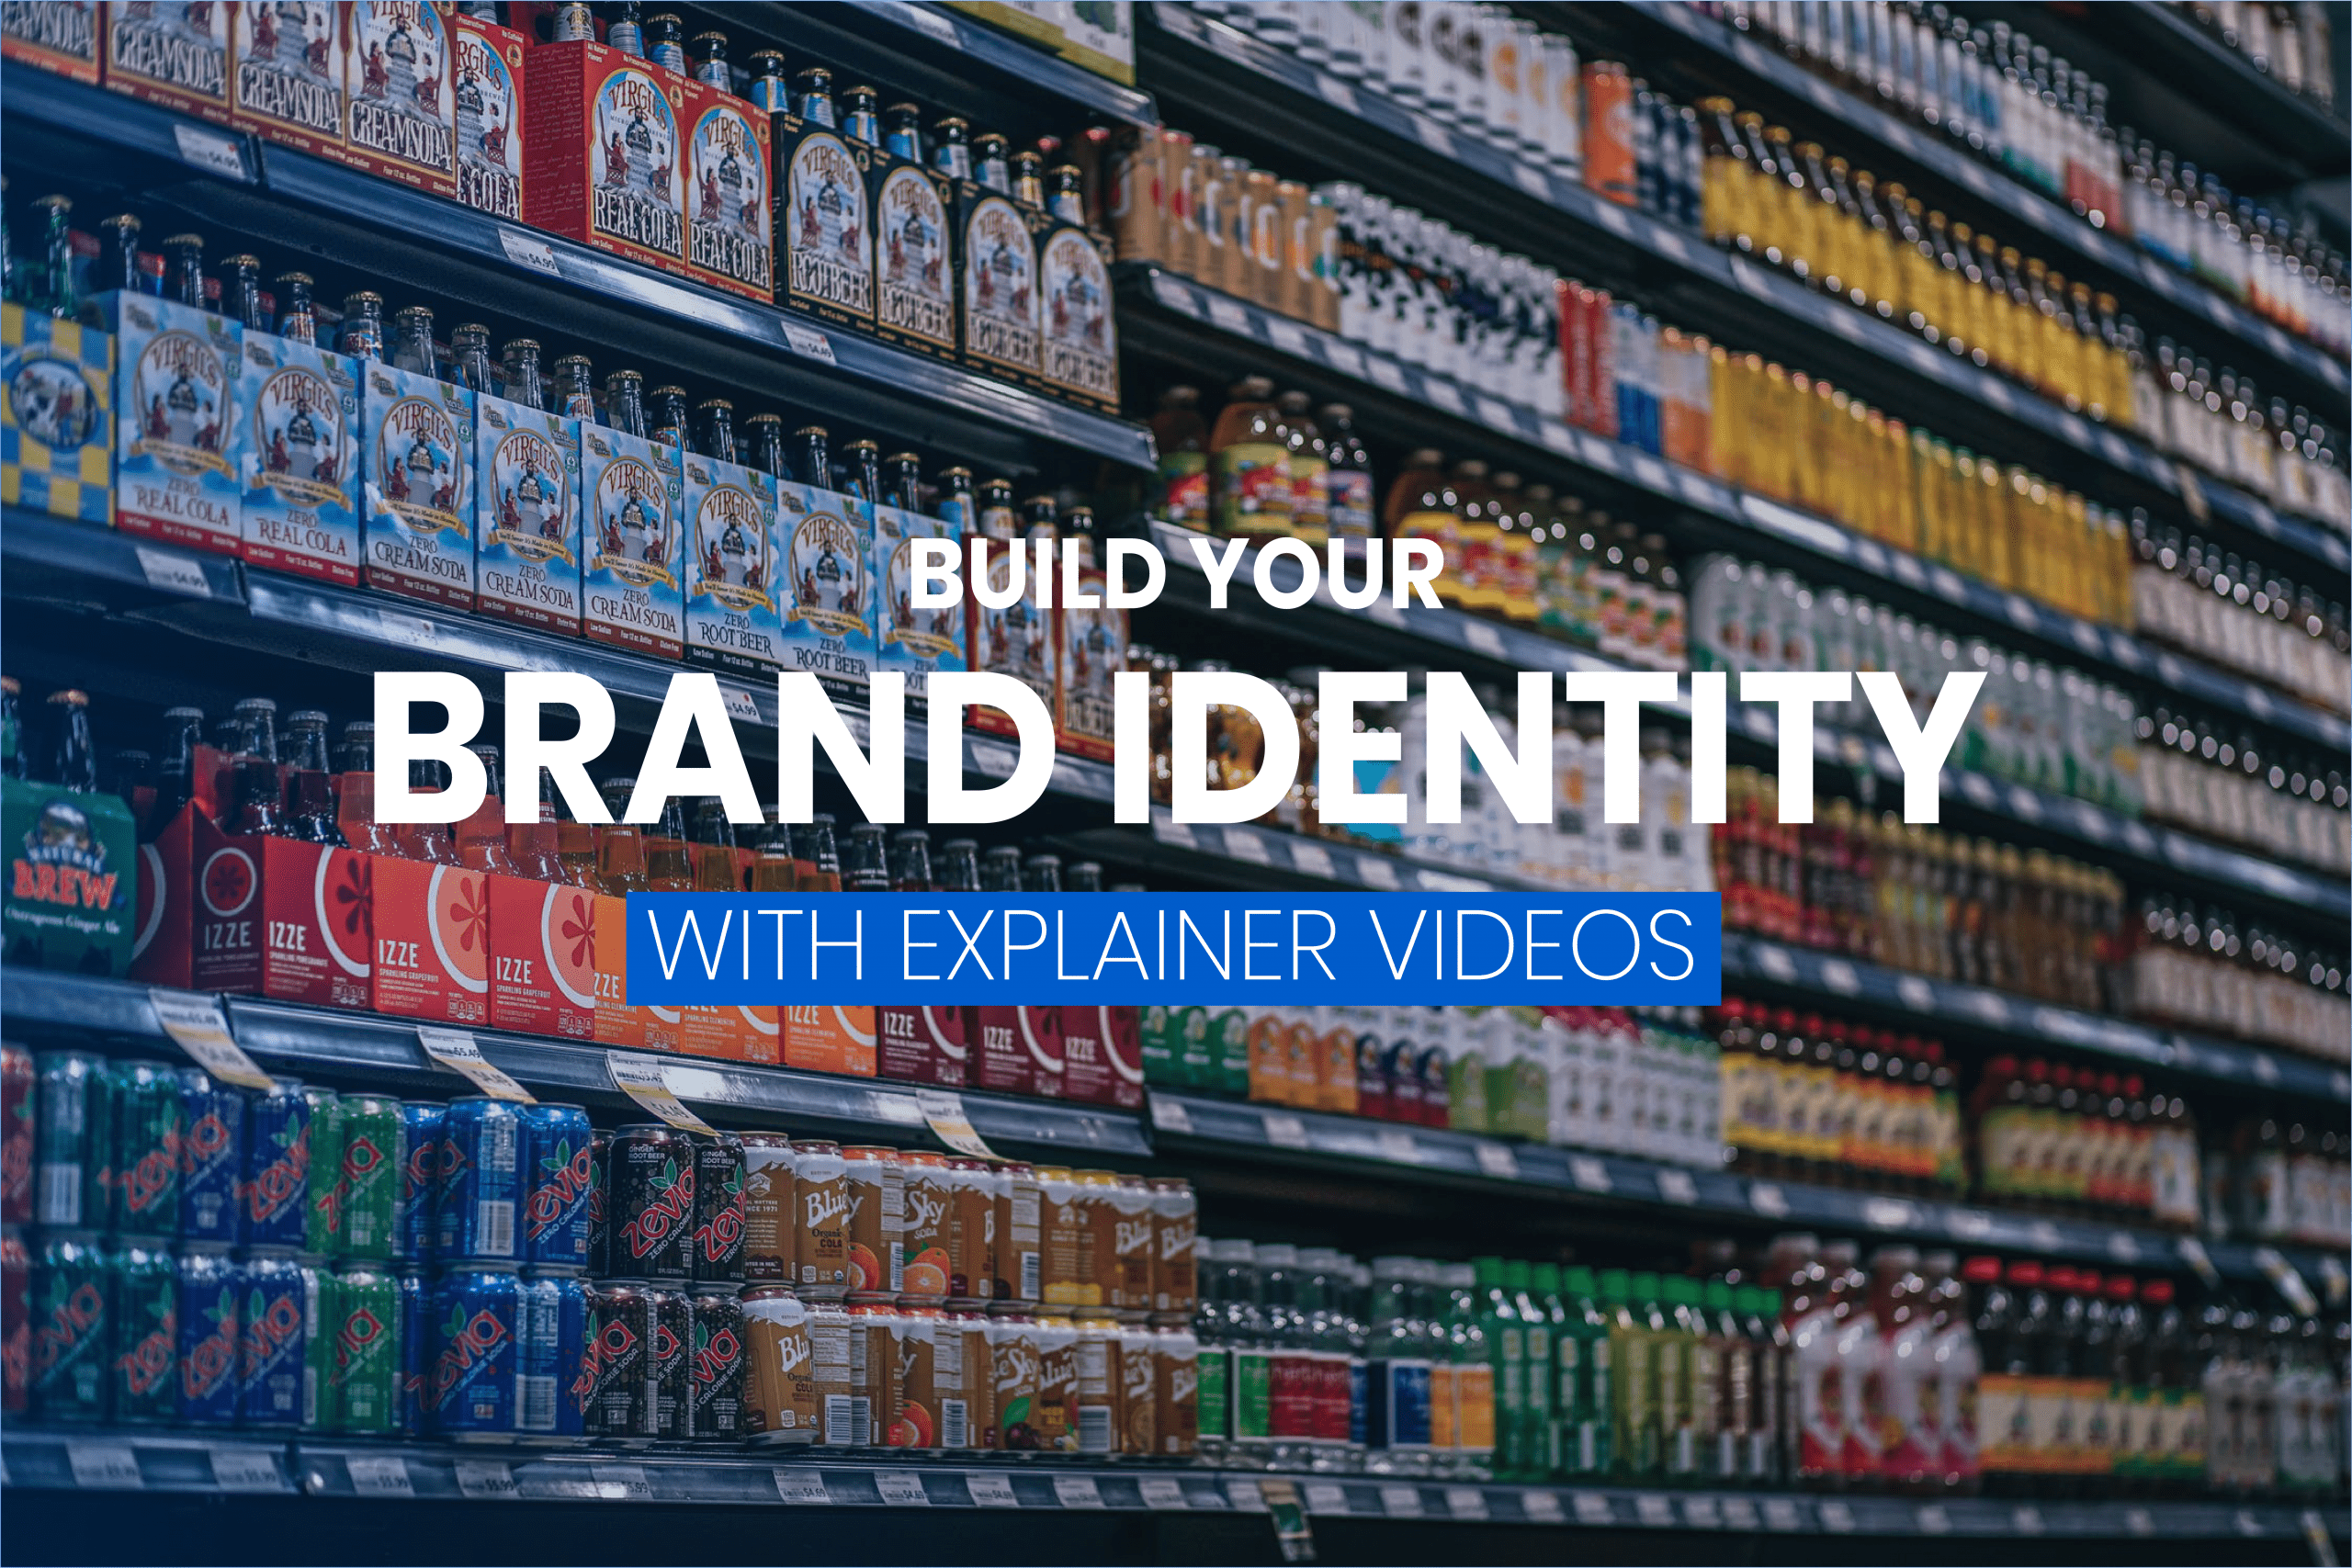 Build your brand identity with explainer videos